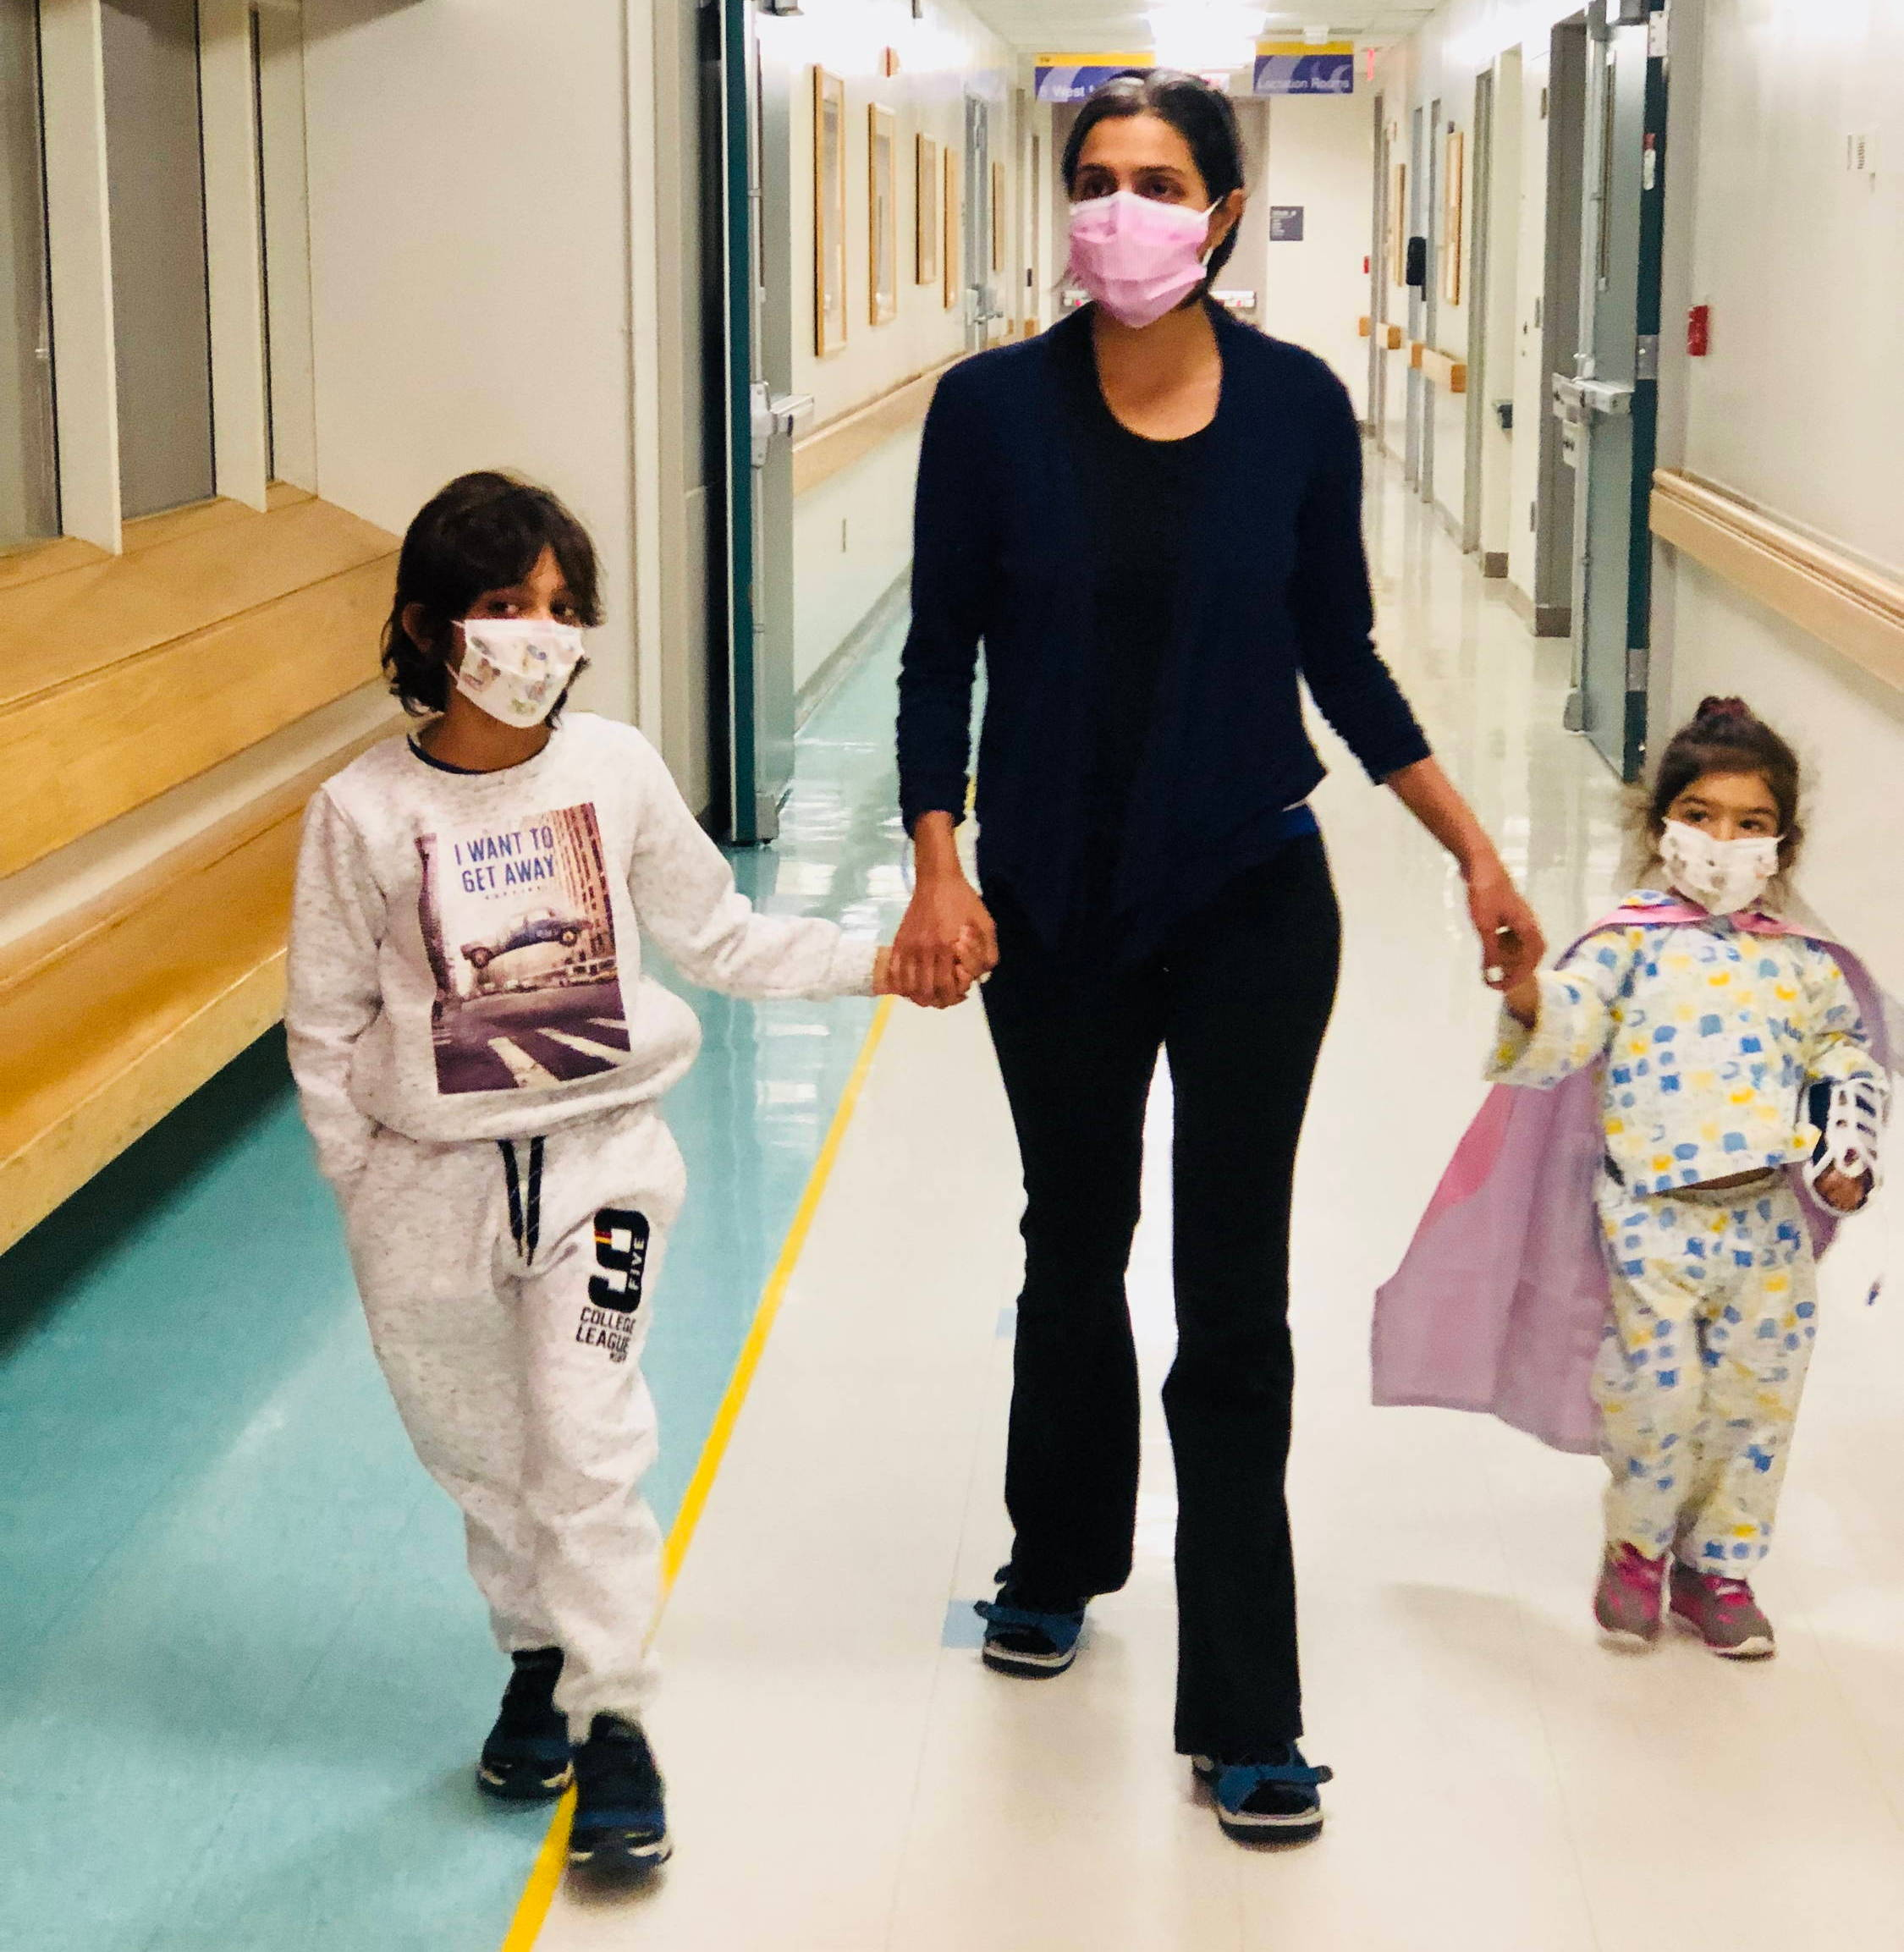 Shalini, the eco, and her children at the hospital